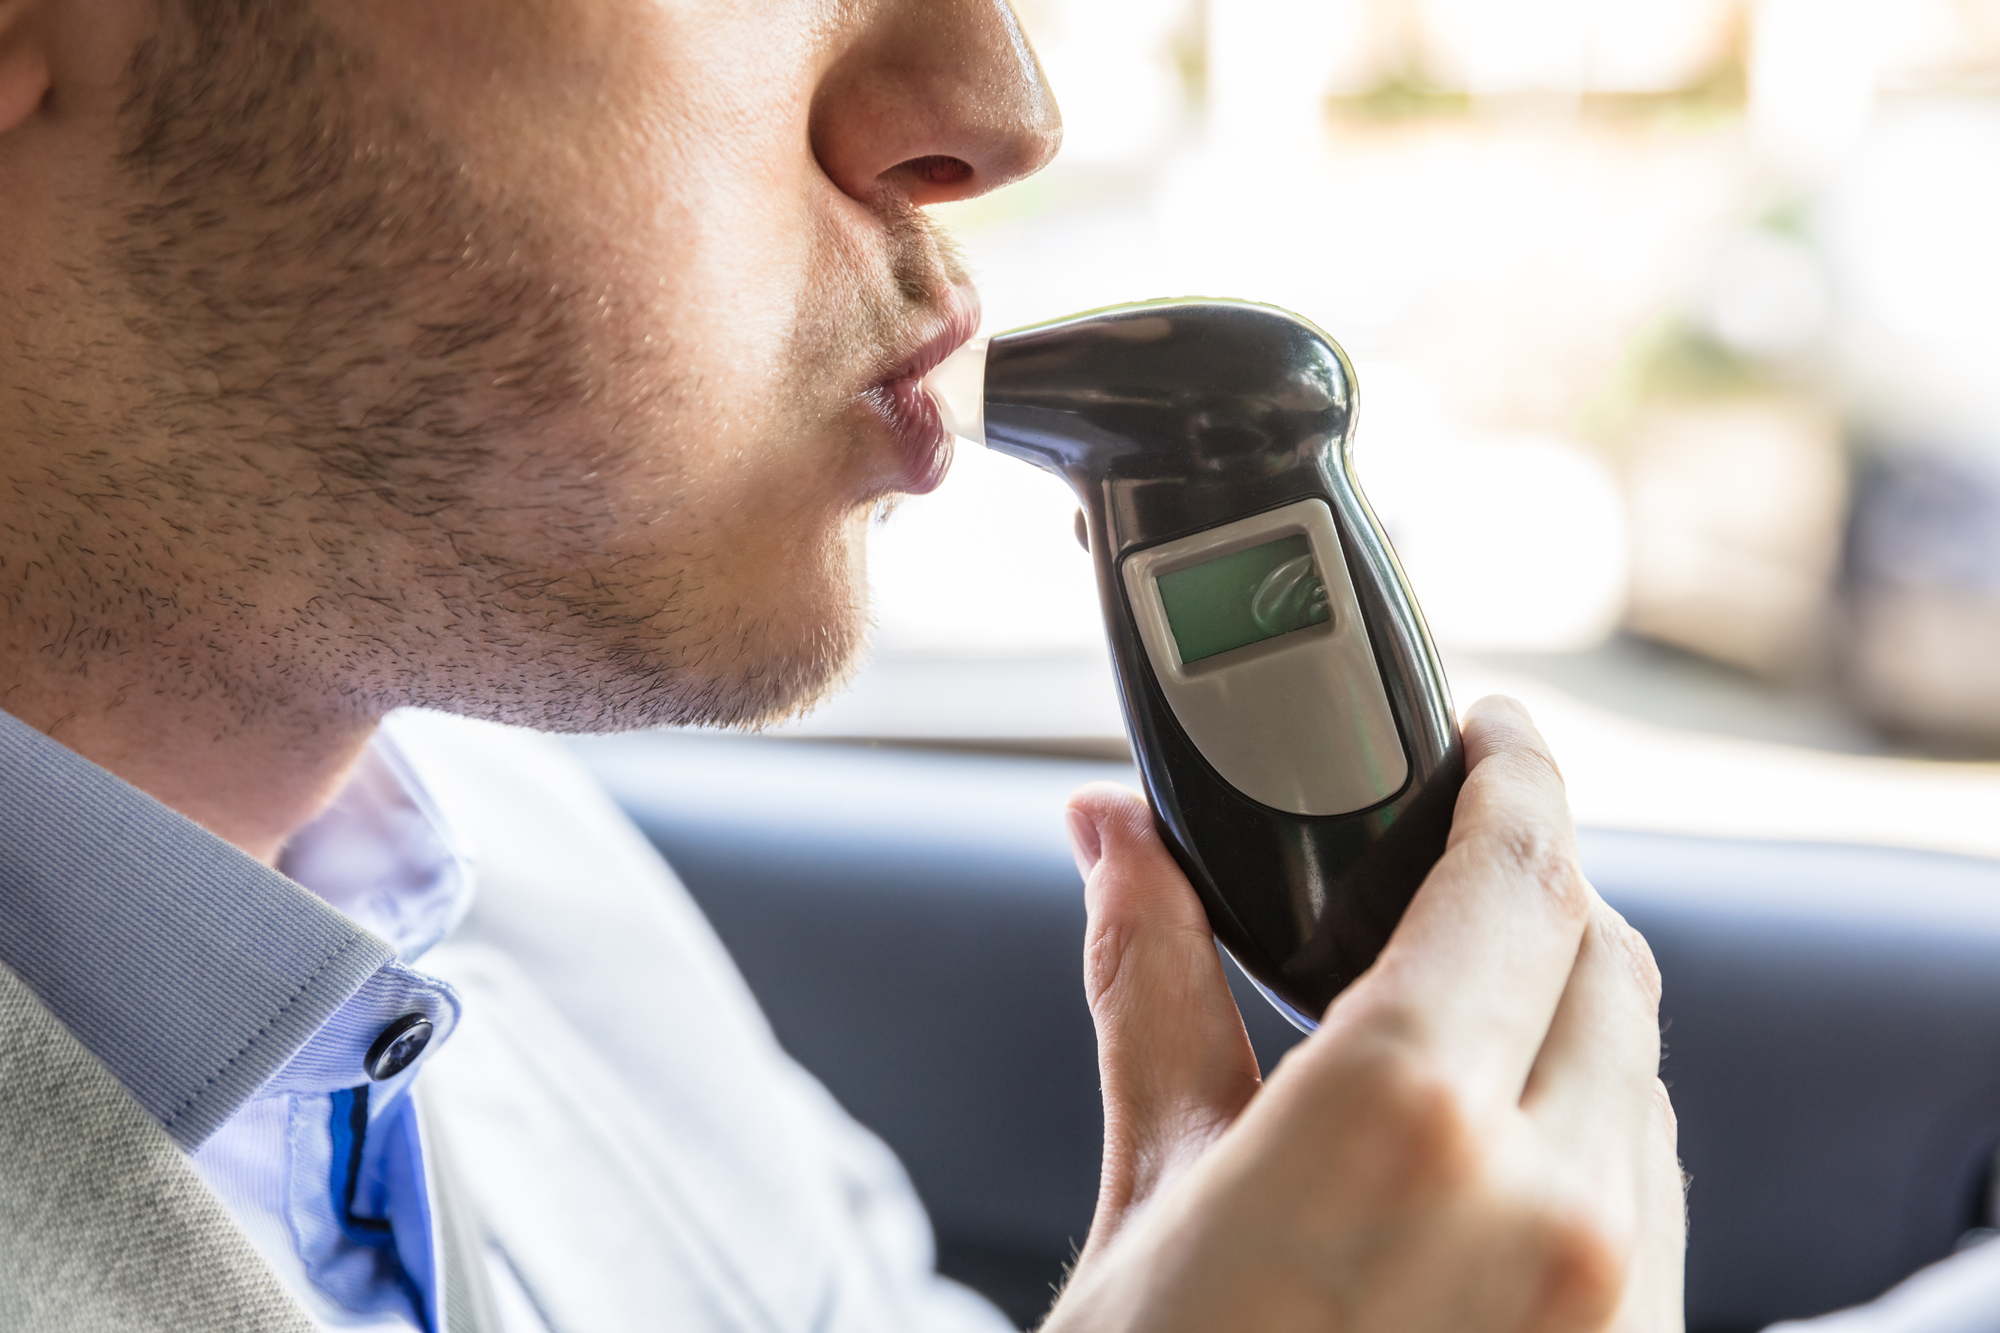 Close-up of a person seated in a car, blowing into a digital alcohol breathalyzer device.